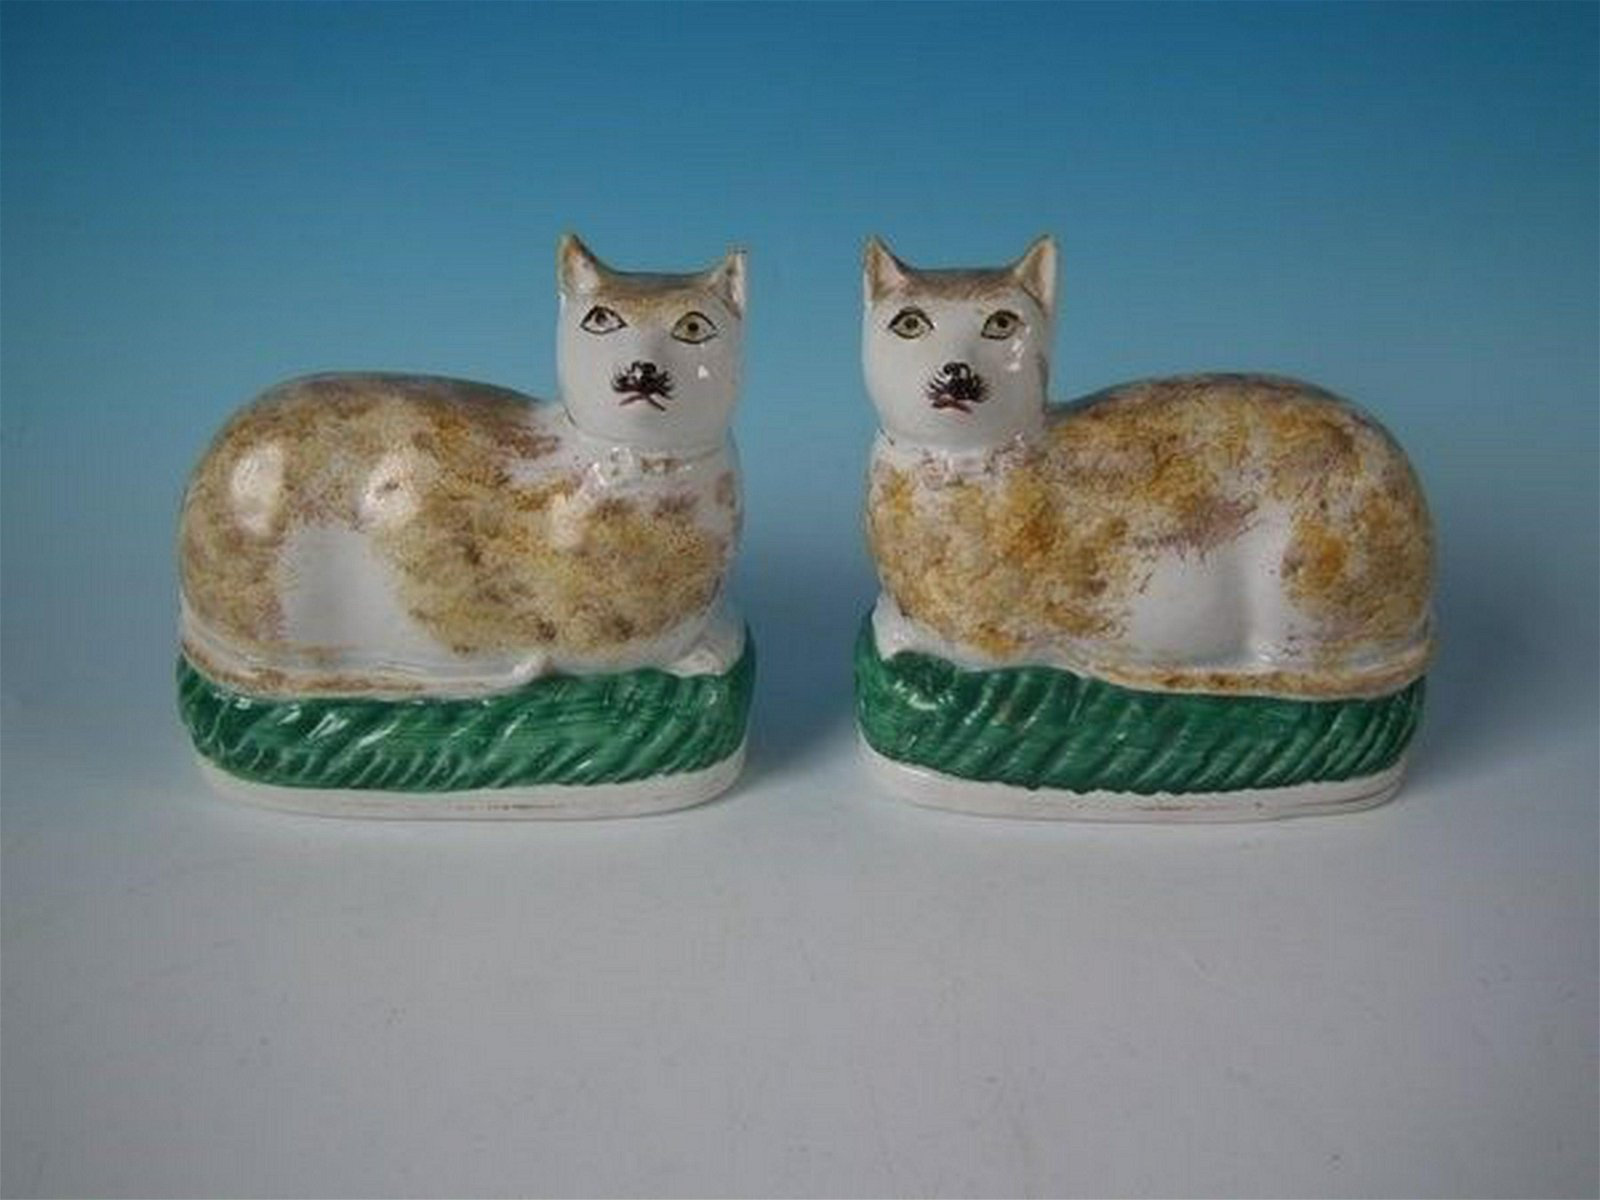 Pair Staffordshire pottery cats, recumbent on cushions